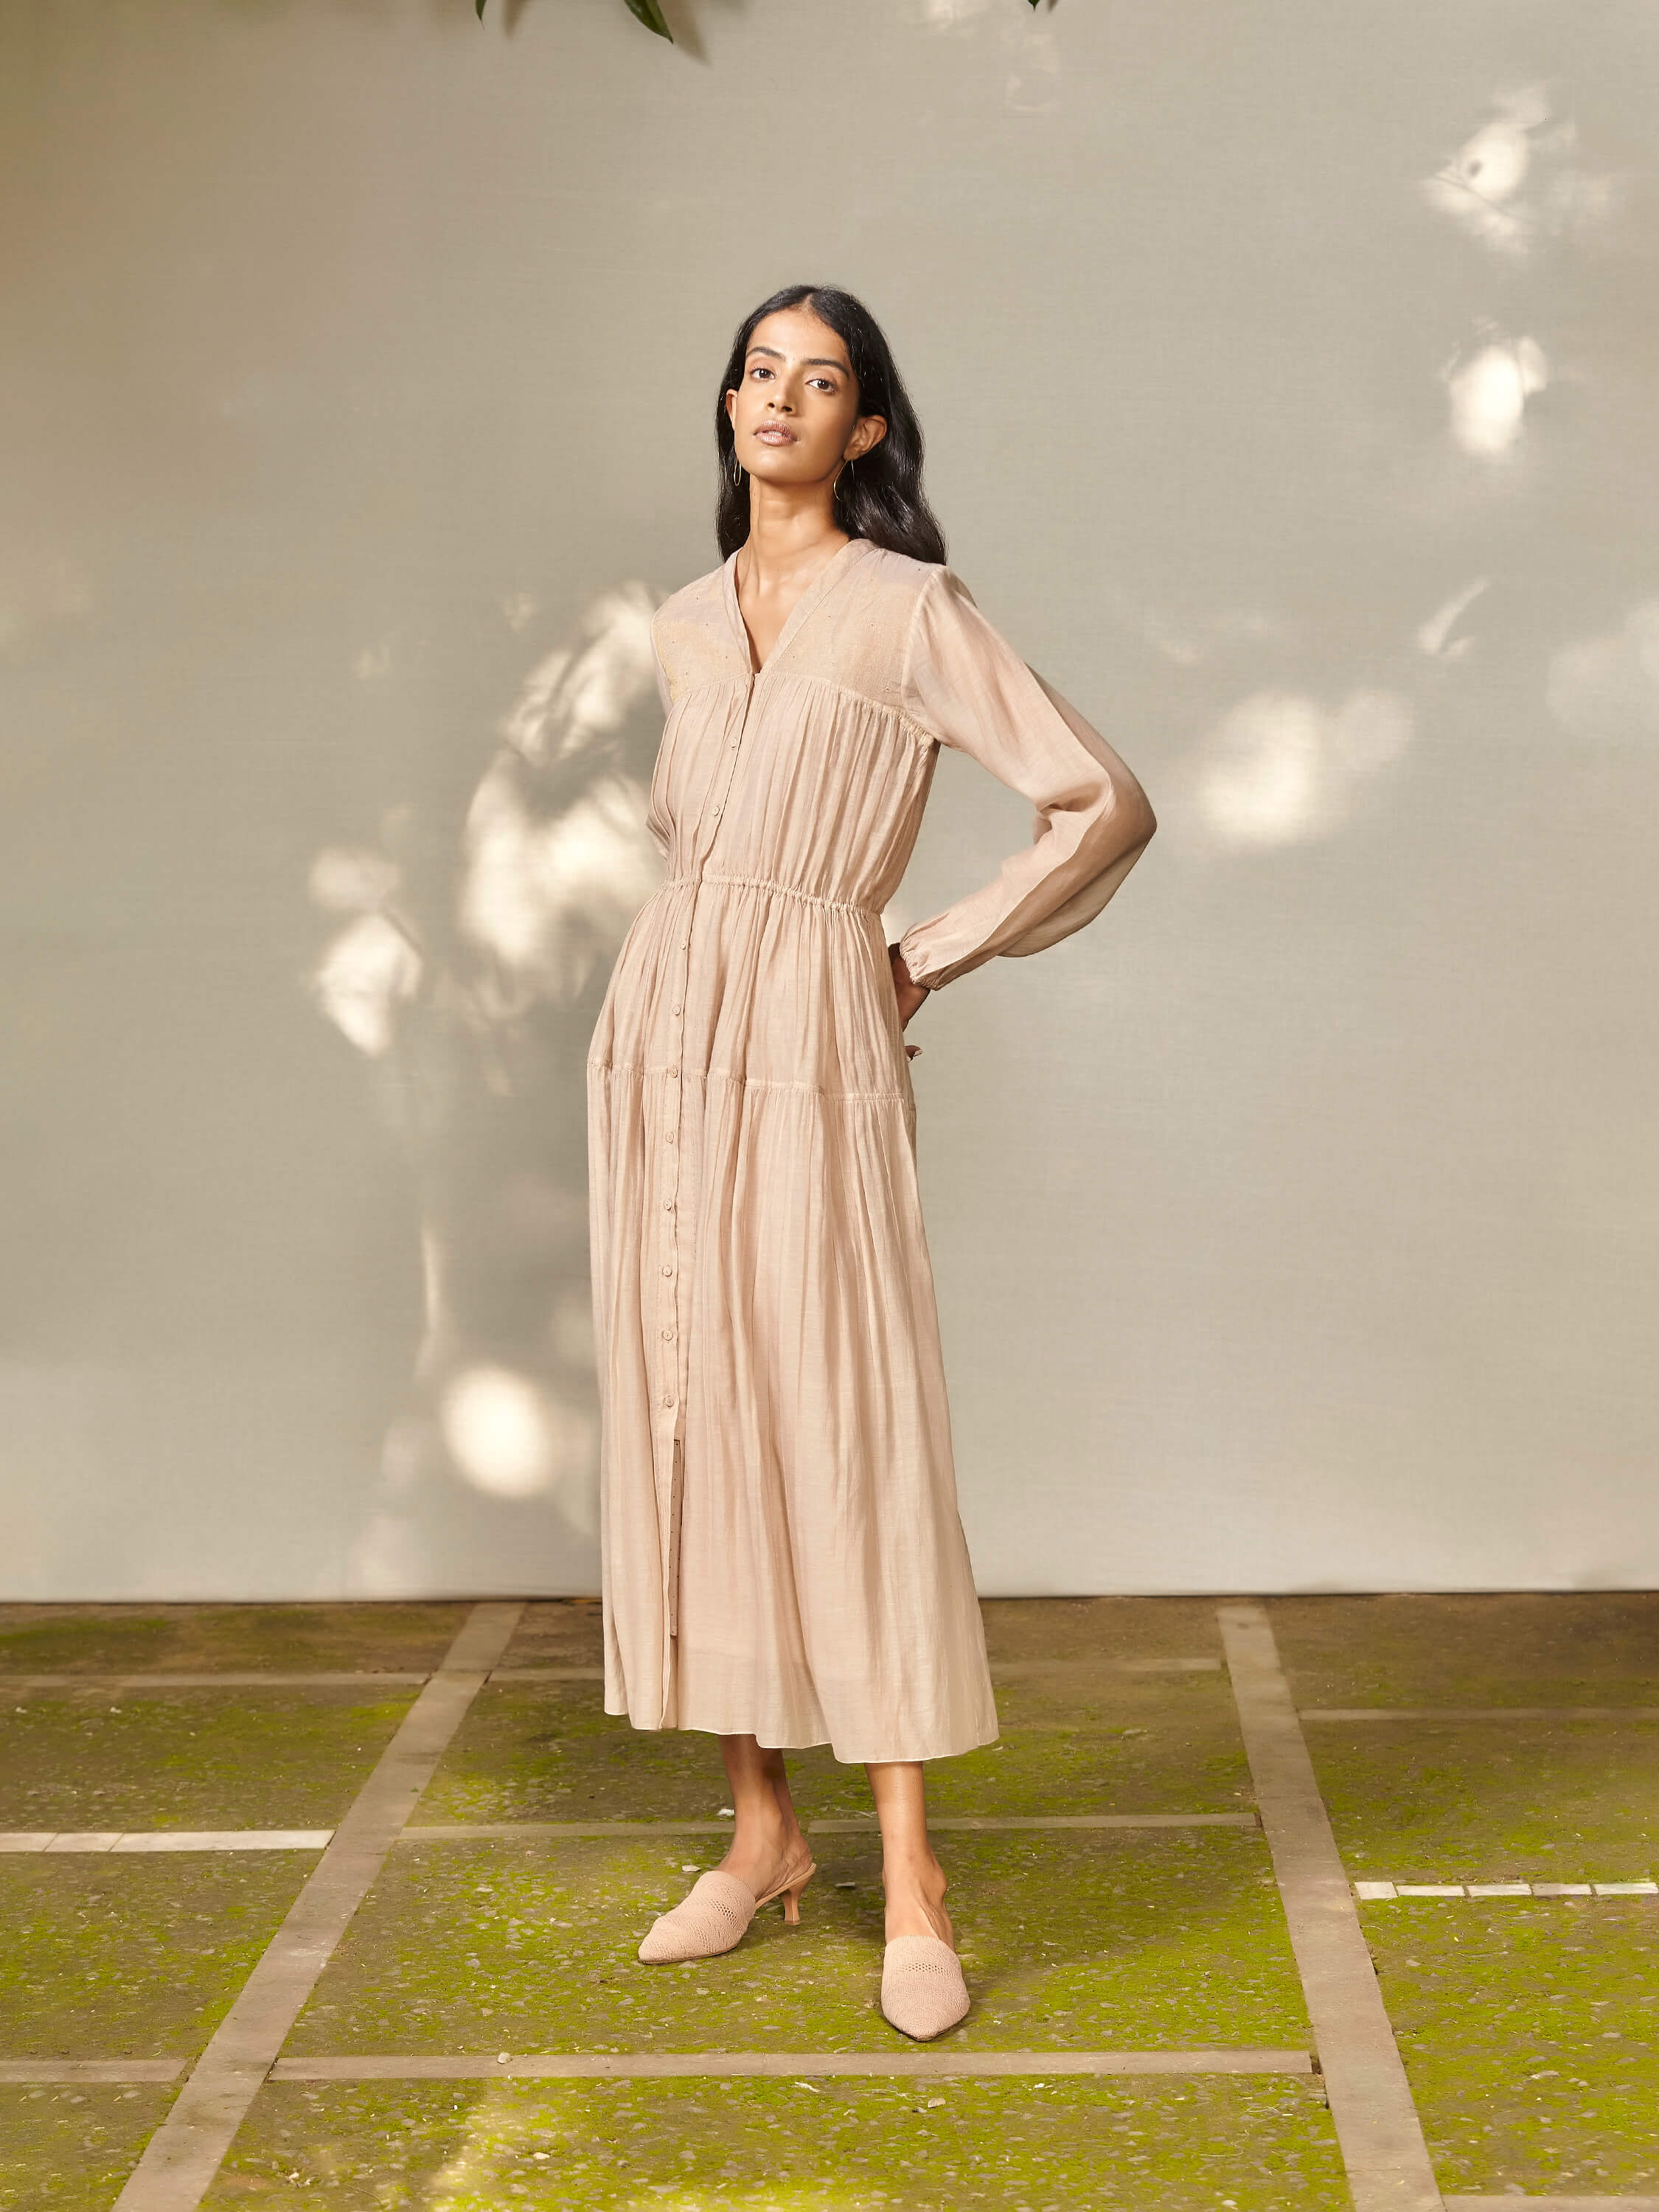 Sunset on The Nile Dress - BunaStudio